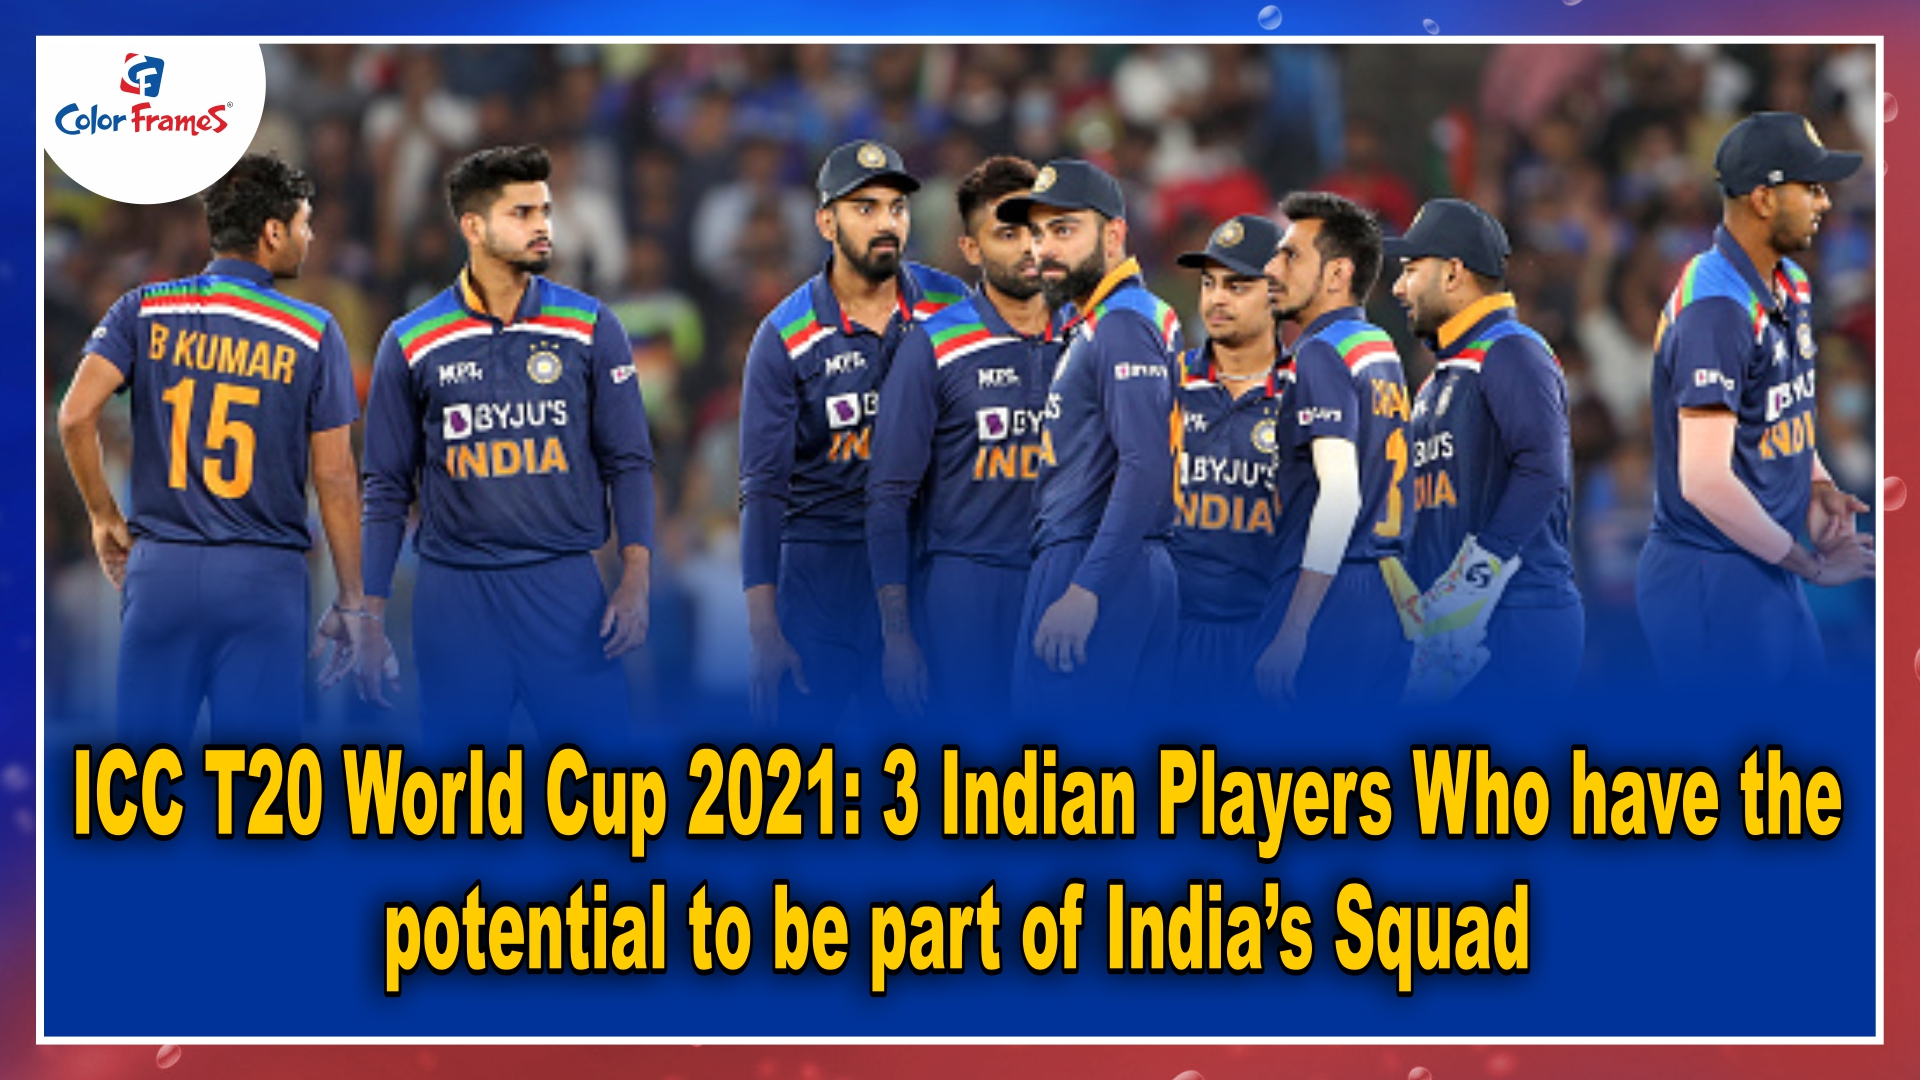 ICC T20 World Cup 2021: 3 Indian Players Who have the potential to be part of India's Squad